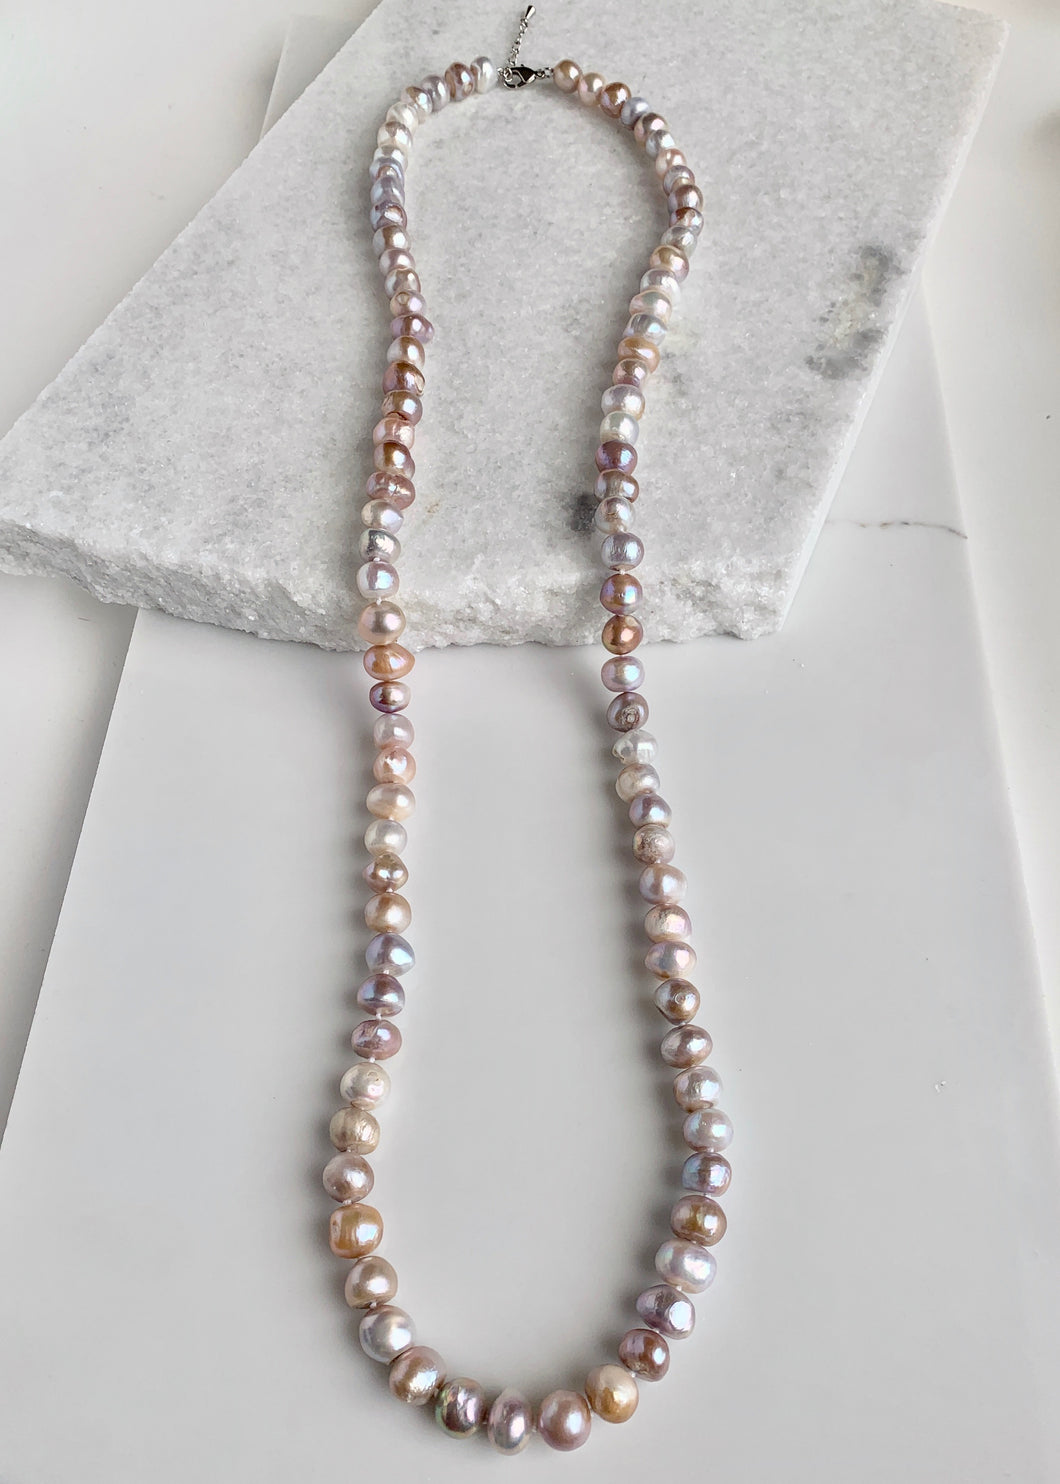 GRACE NECKLACE - 039 - NATURAL PINK